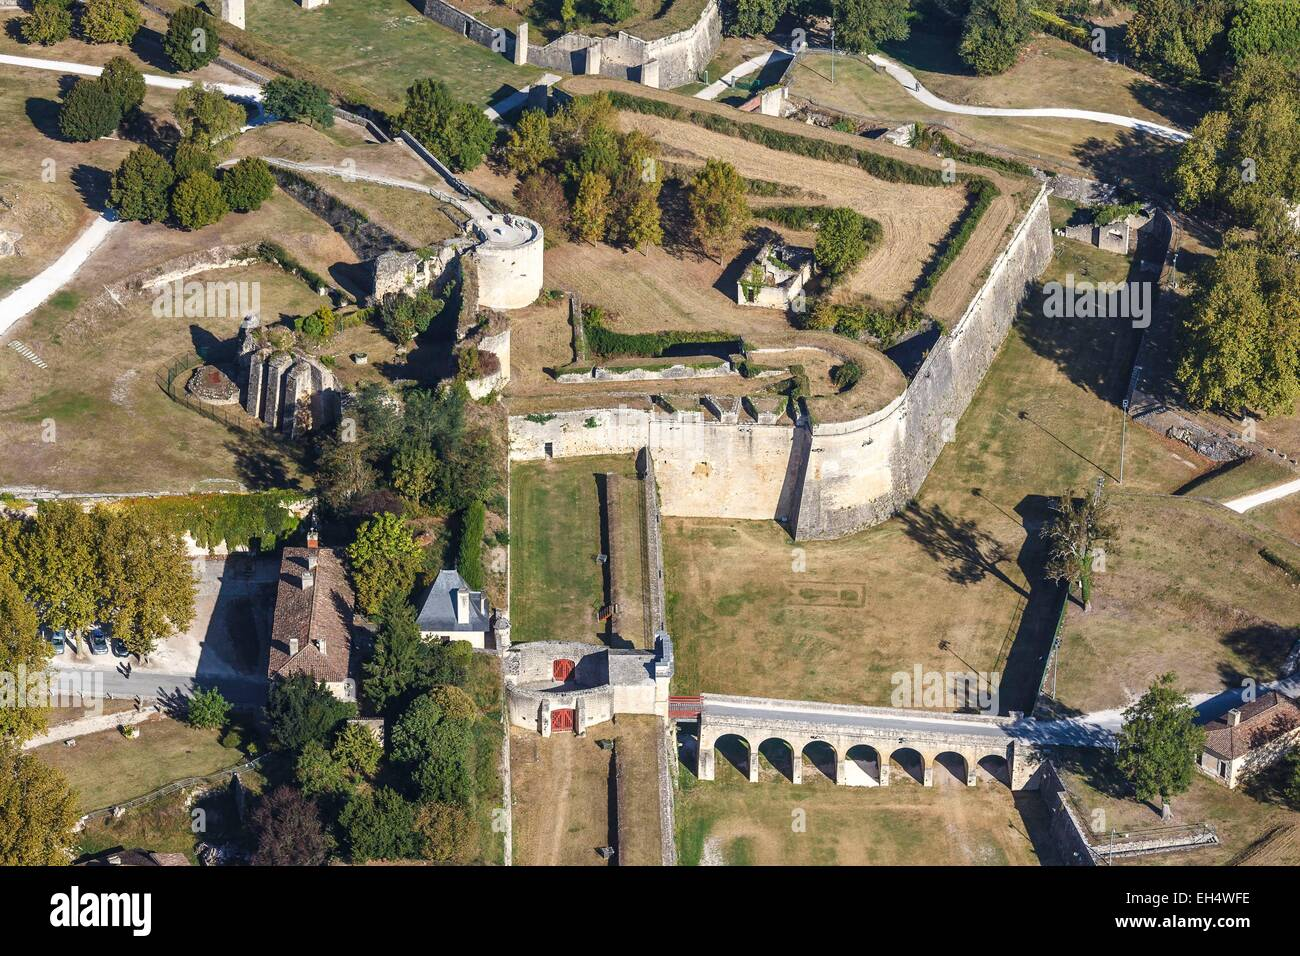 France, Gironde, Blaye, The citadel, Fortifications of Vauban, listed as World Heritage by UNESCO, the Porte royale - Stock Image